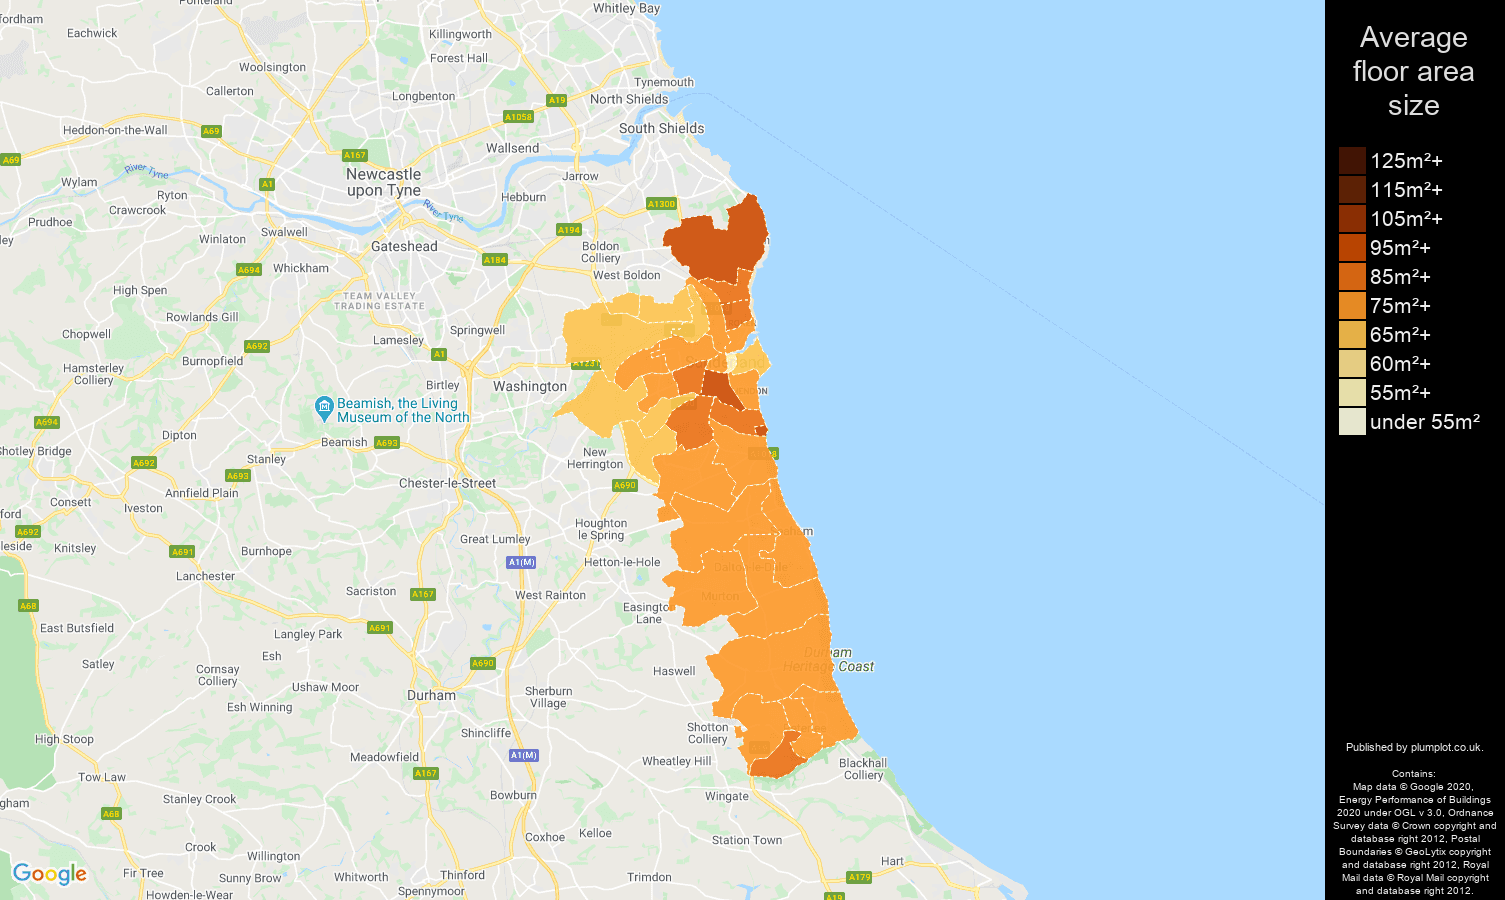 Sunderland map of average floor area size of properties